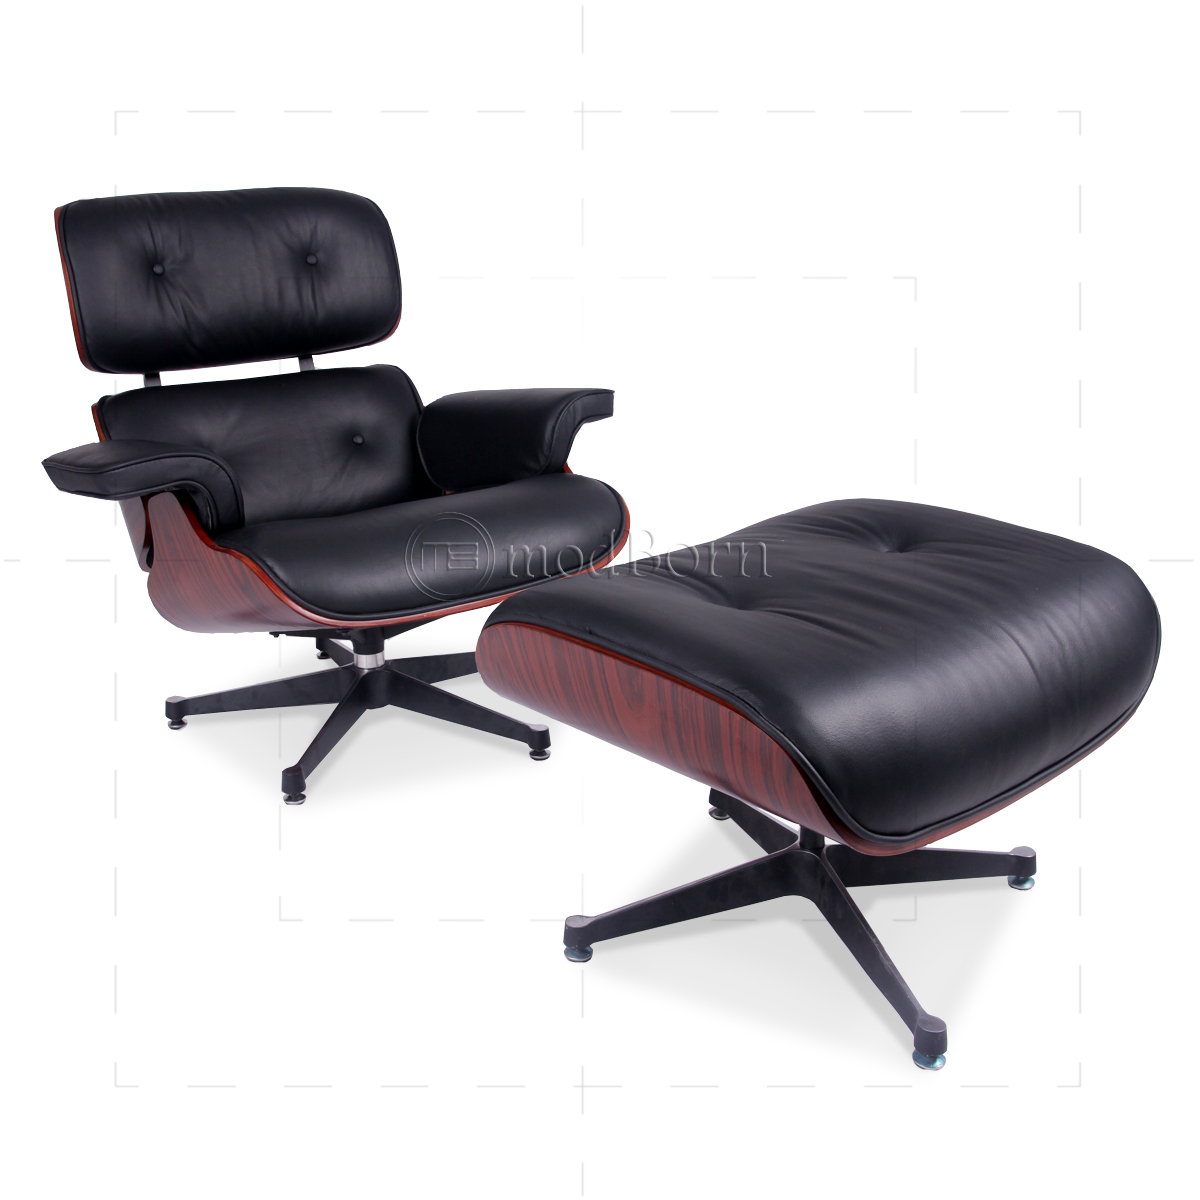 Eames Inspired Lounge Chairs Eames Style Lounge Chair And Ottoman Black Leather